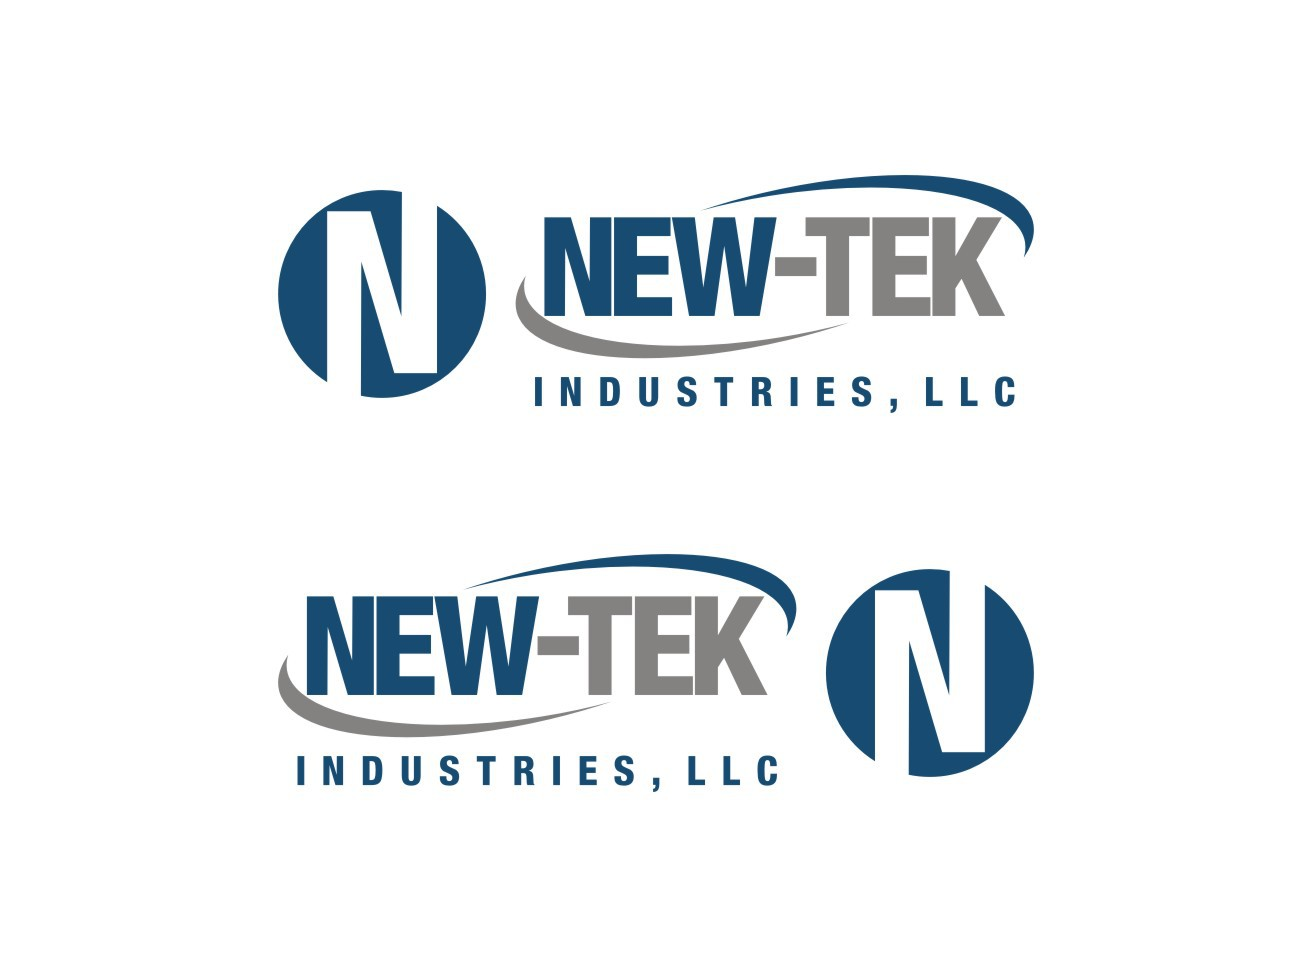 logo for New-Tek Industries LLC